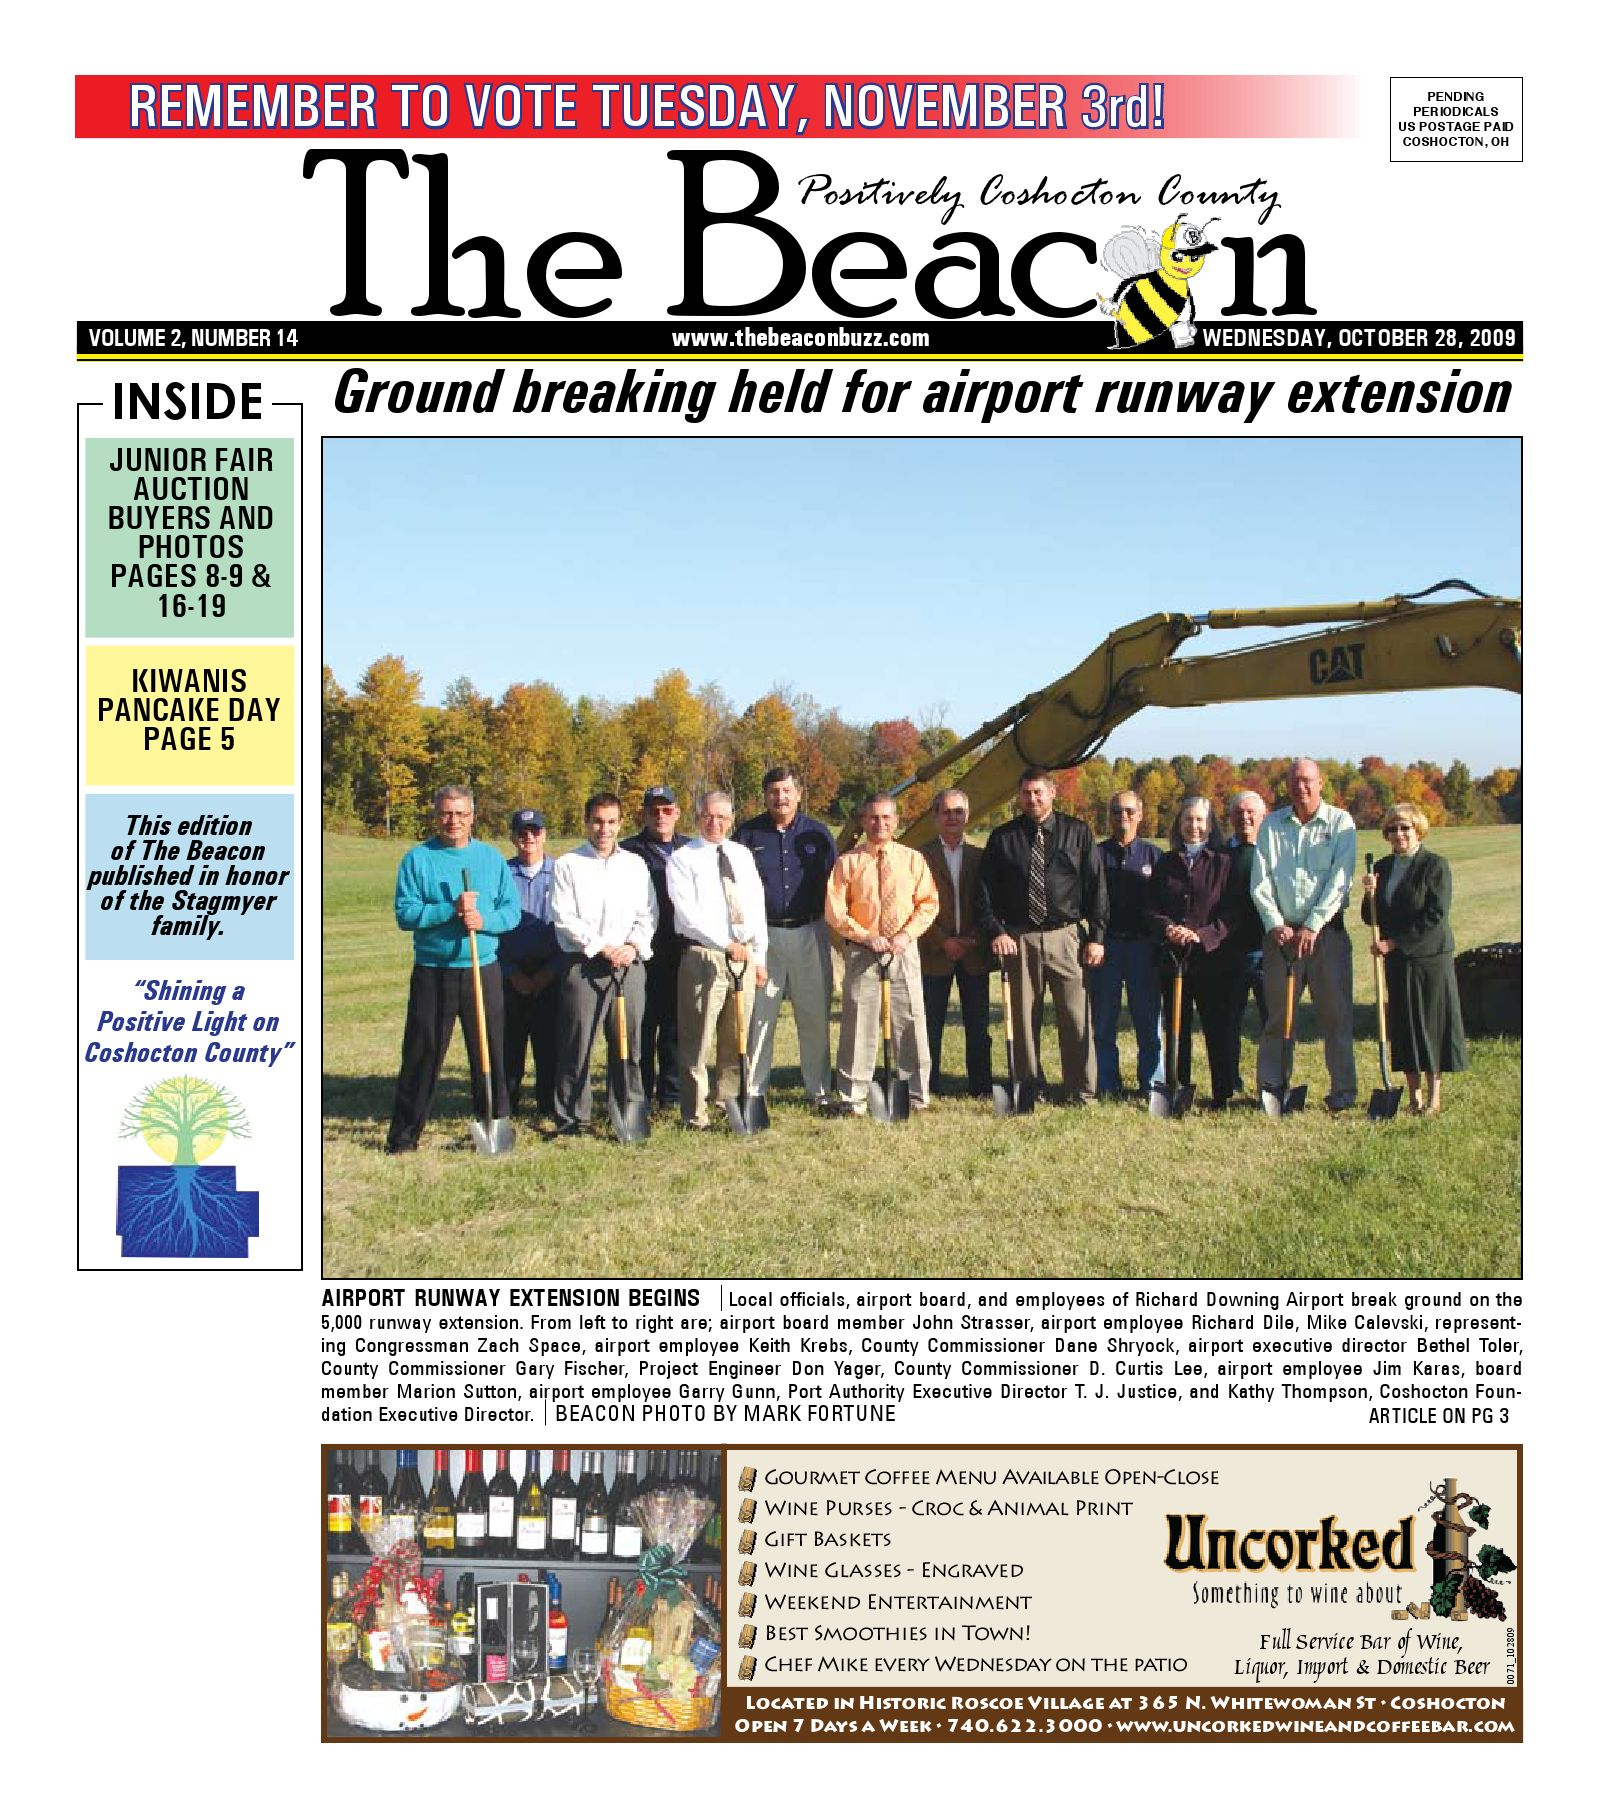 October 28 2009 Coshocton County Beacon by The Coshocton County